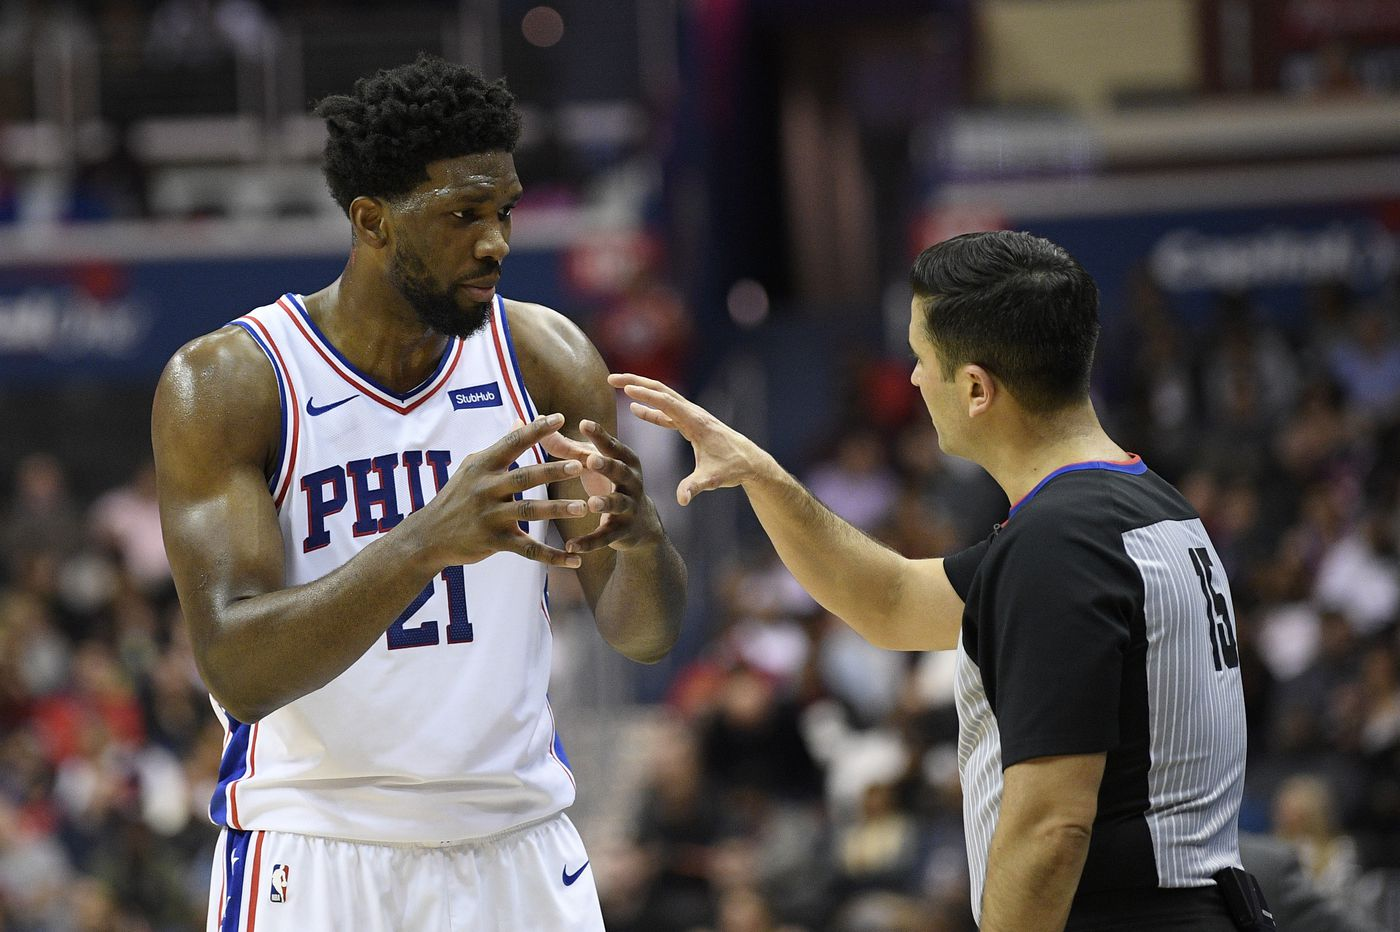 Sixers' Joel Embiid will sit against Atlanta Hawks with sore left ankle, JJ Redick to return